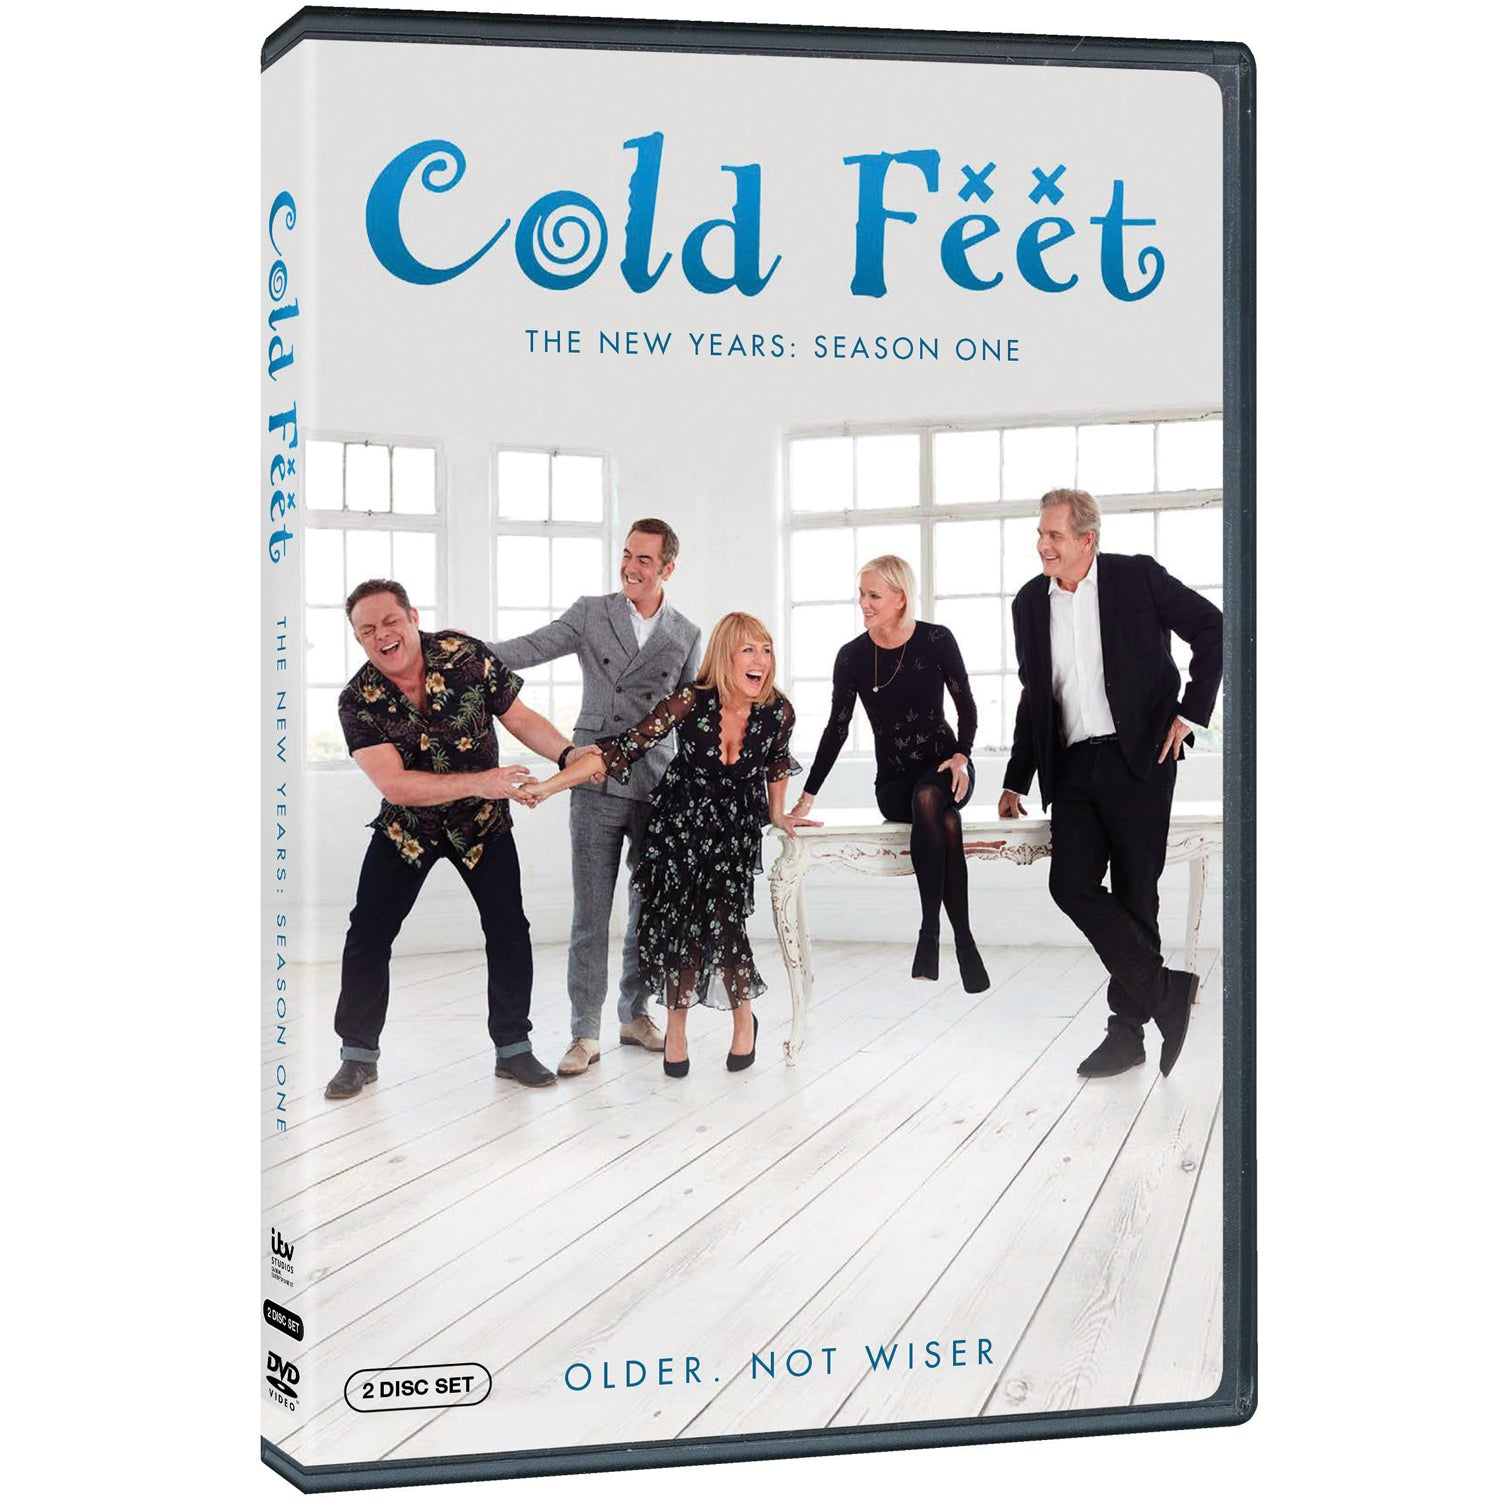 Cold Feet The New Years: Season 1